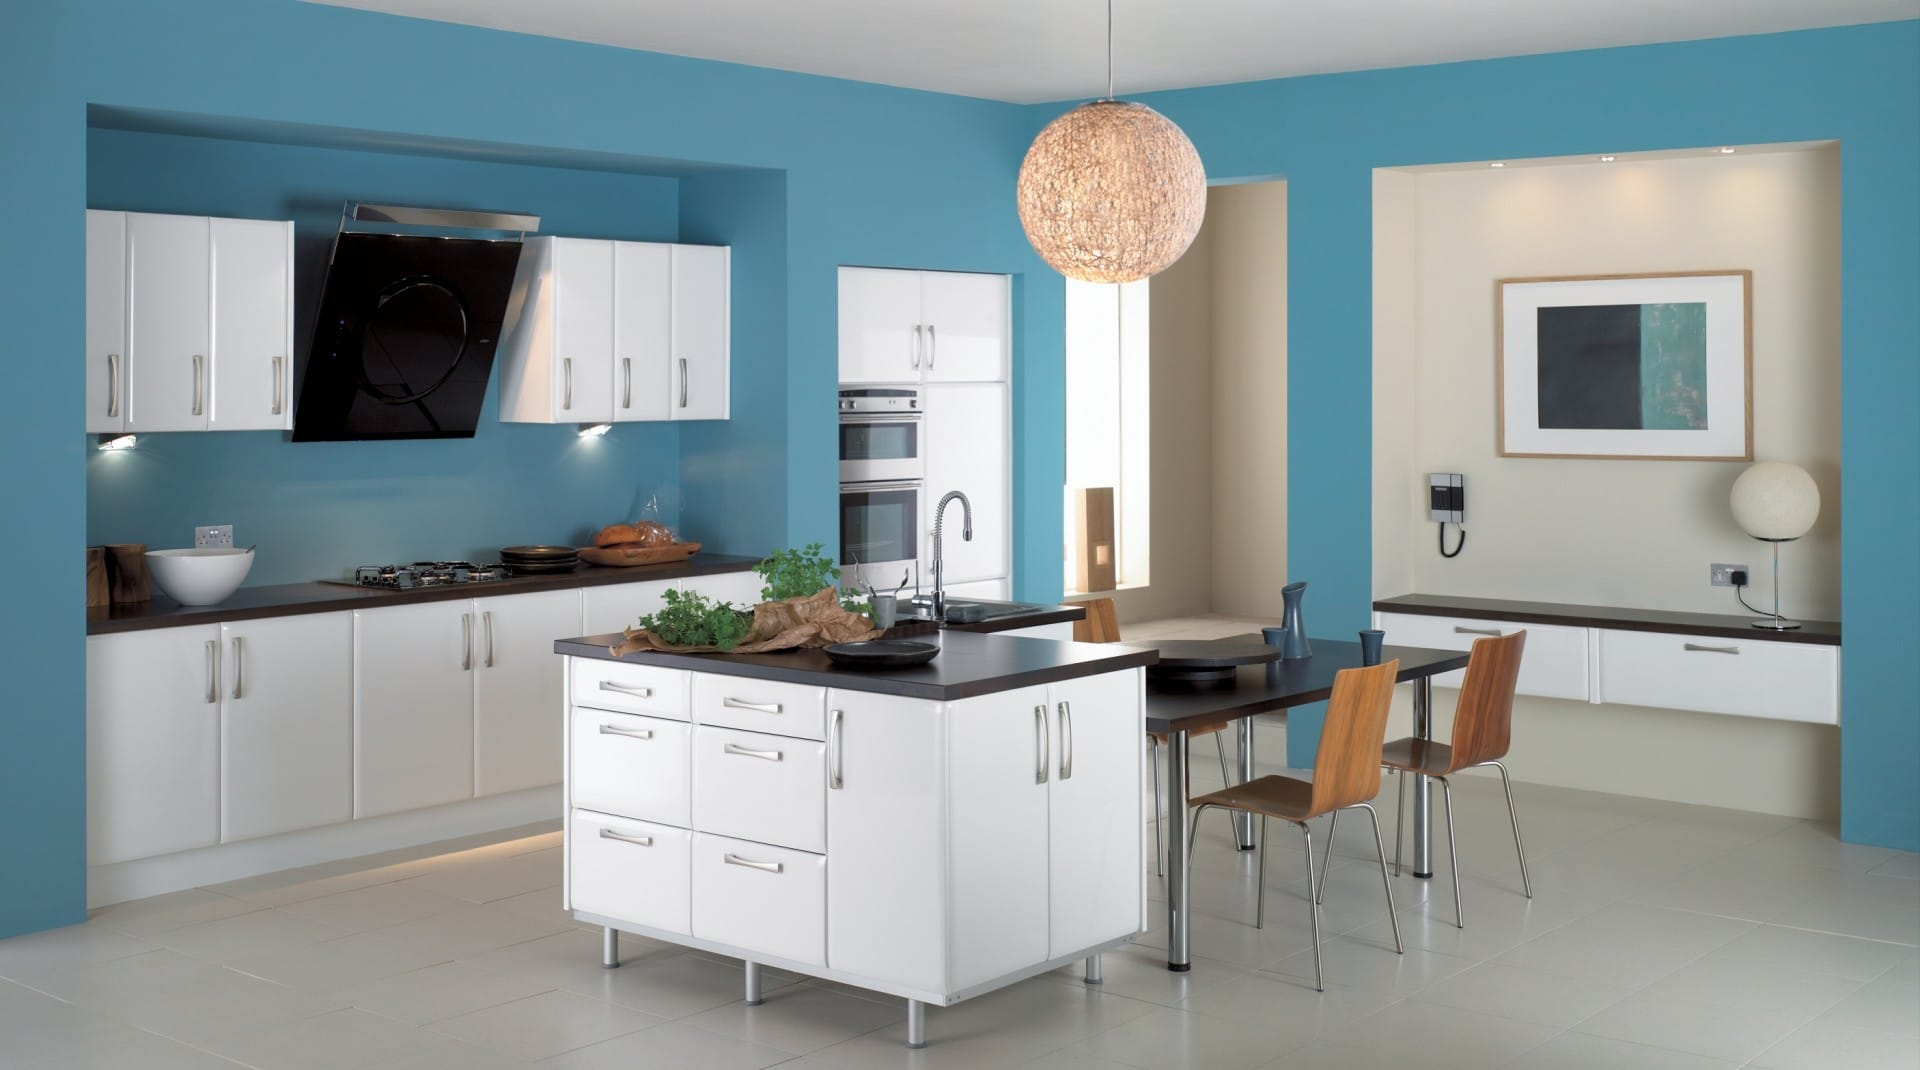 Paint Ideas For Small Kitchens Part - 26: Small-Kitchen-light-Blue-Paint-Colors-Ideas